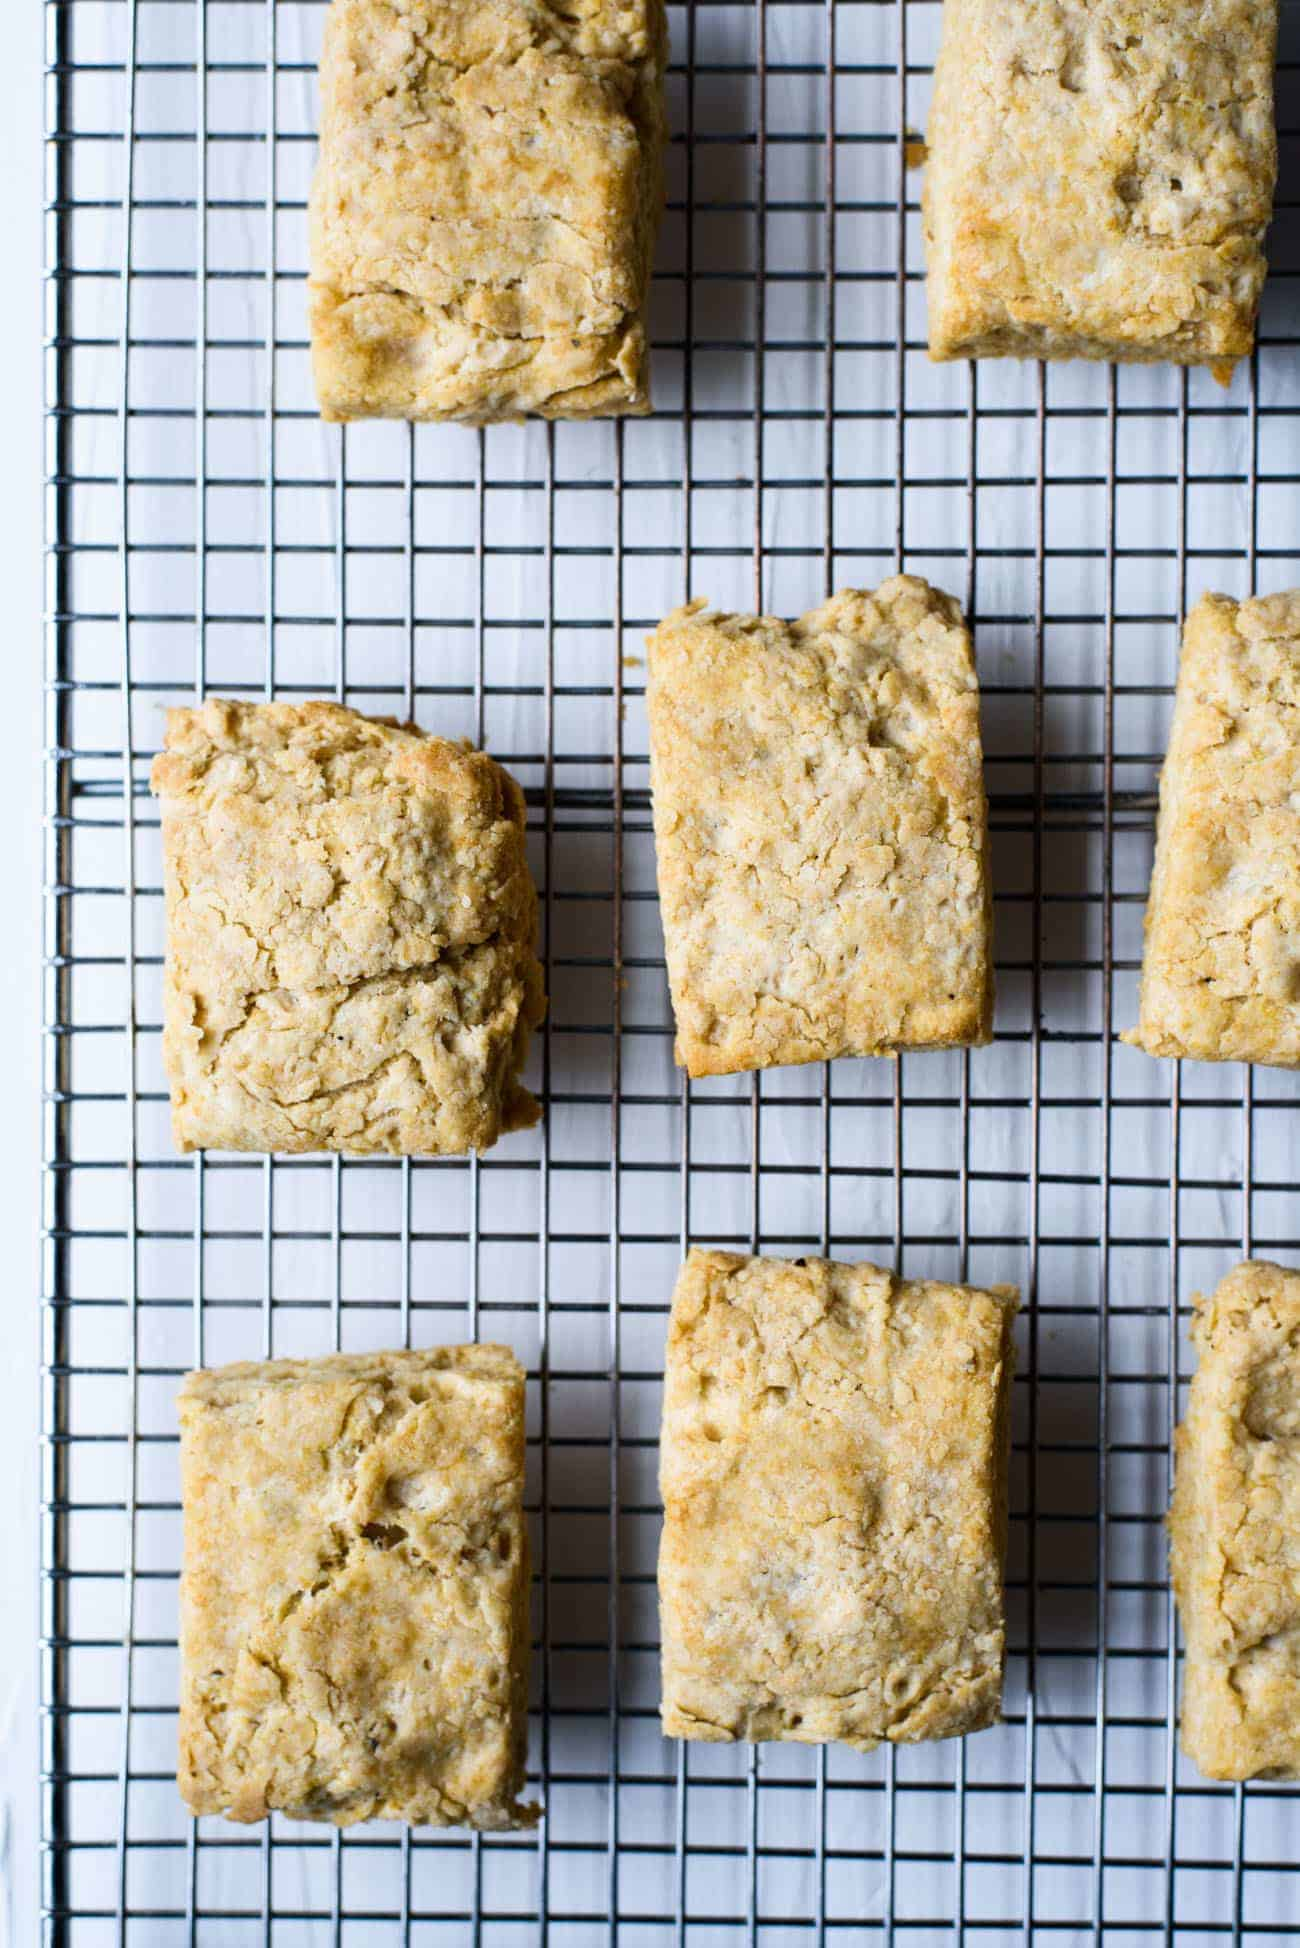 Vegan coconut oil biscuits on a cooling rack